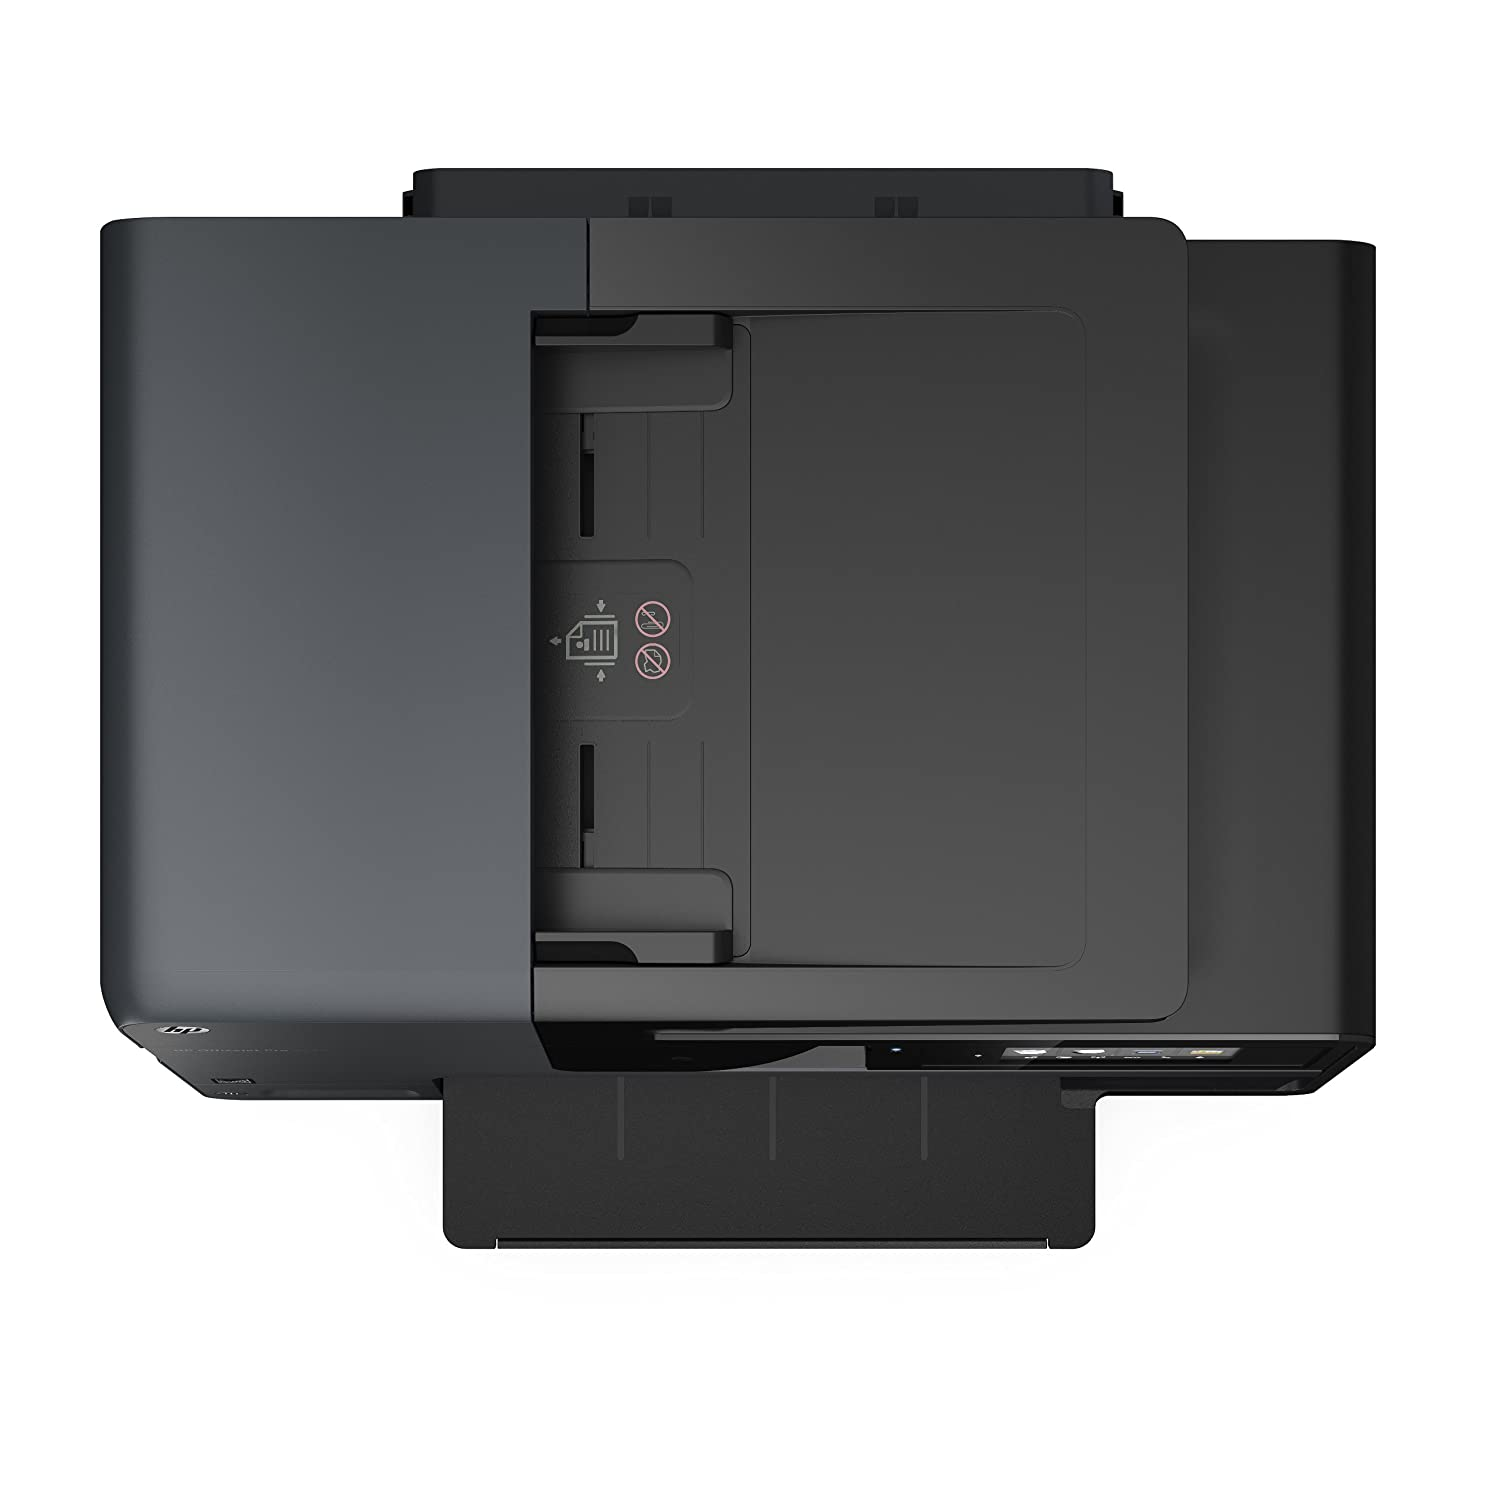 Amazon.com: HP OfficeJet Pro 8630 All-in-One Color Photo Printer with  Wireless & Mobile Printing, HP Instant Ink & Amazon Dash Replenishment  ready (A7F66A) ...